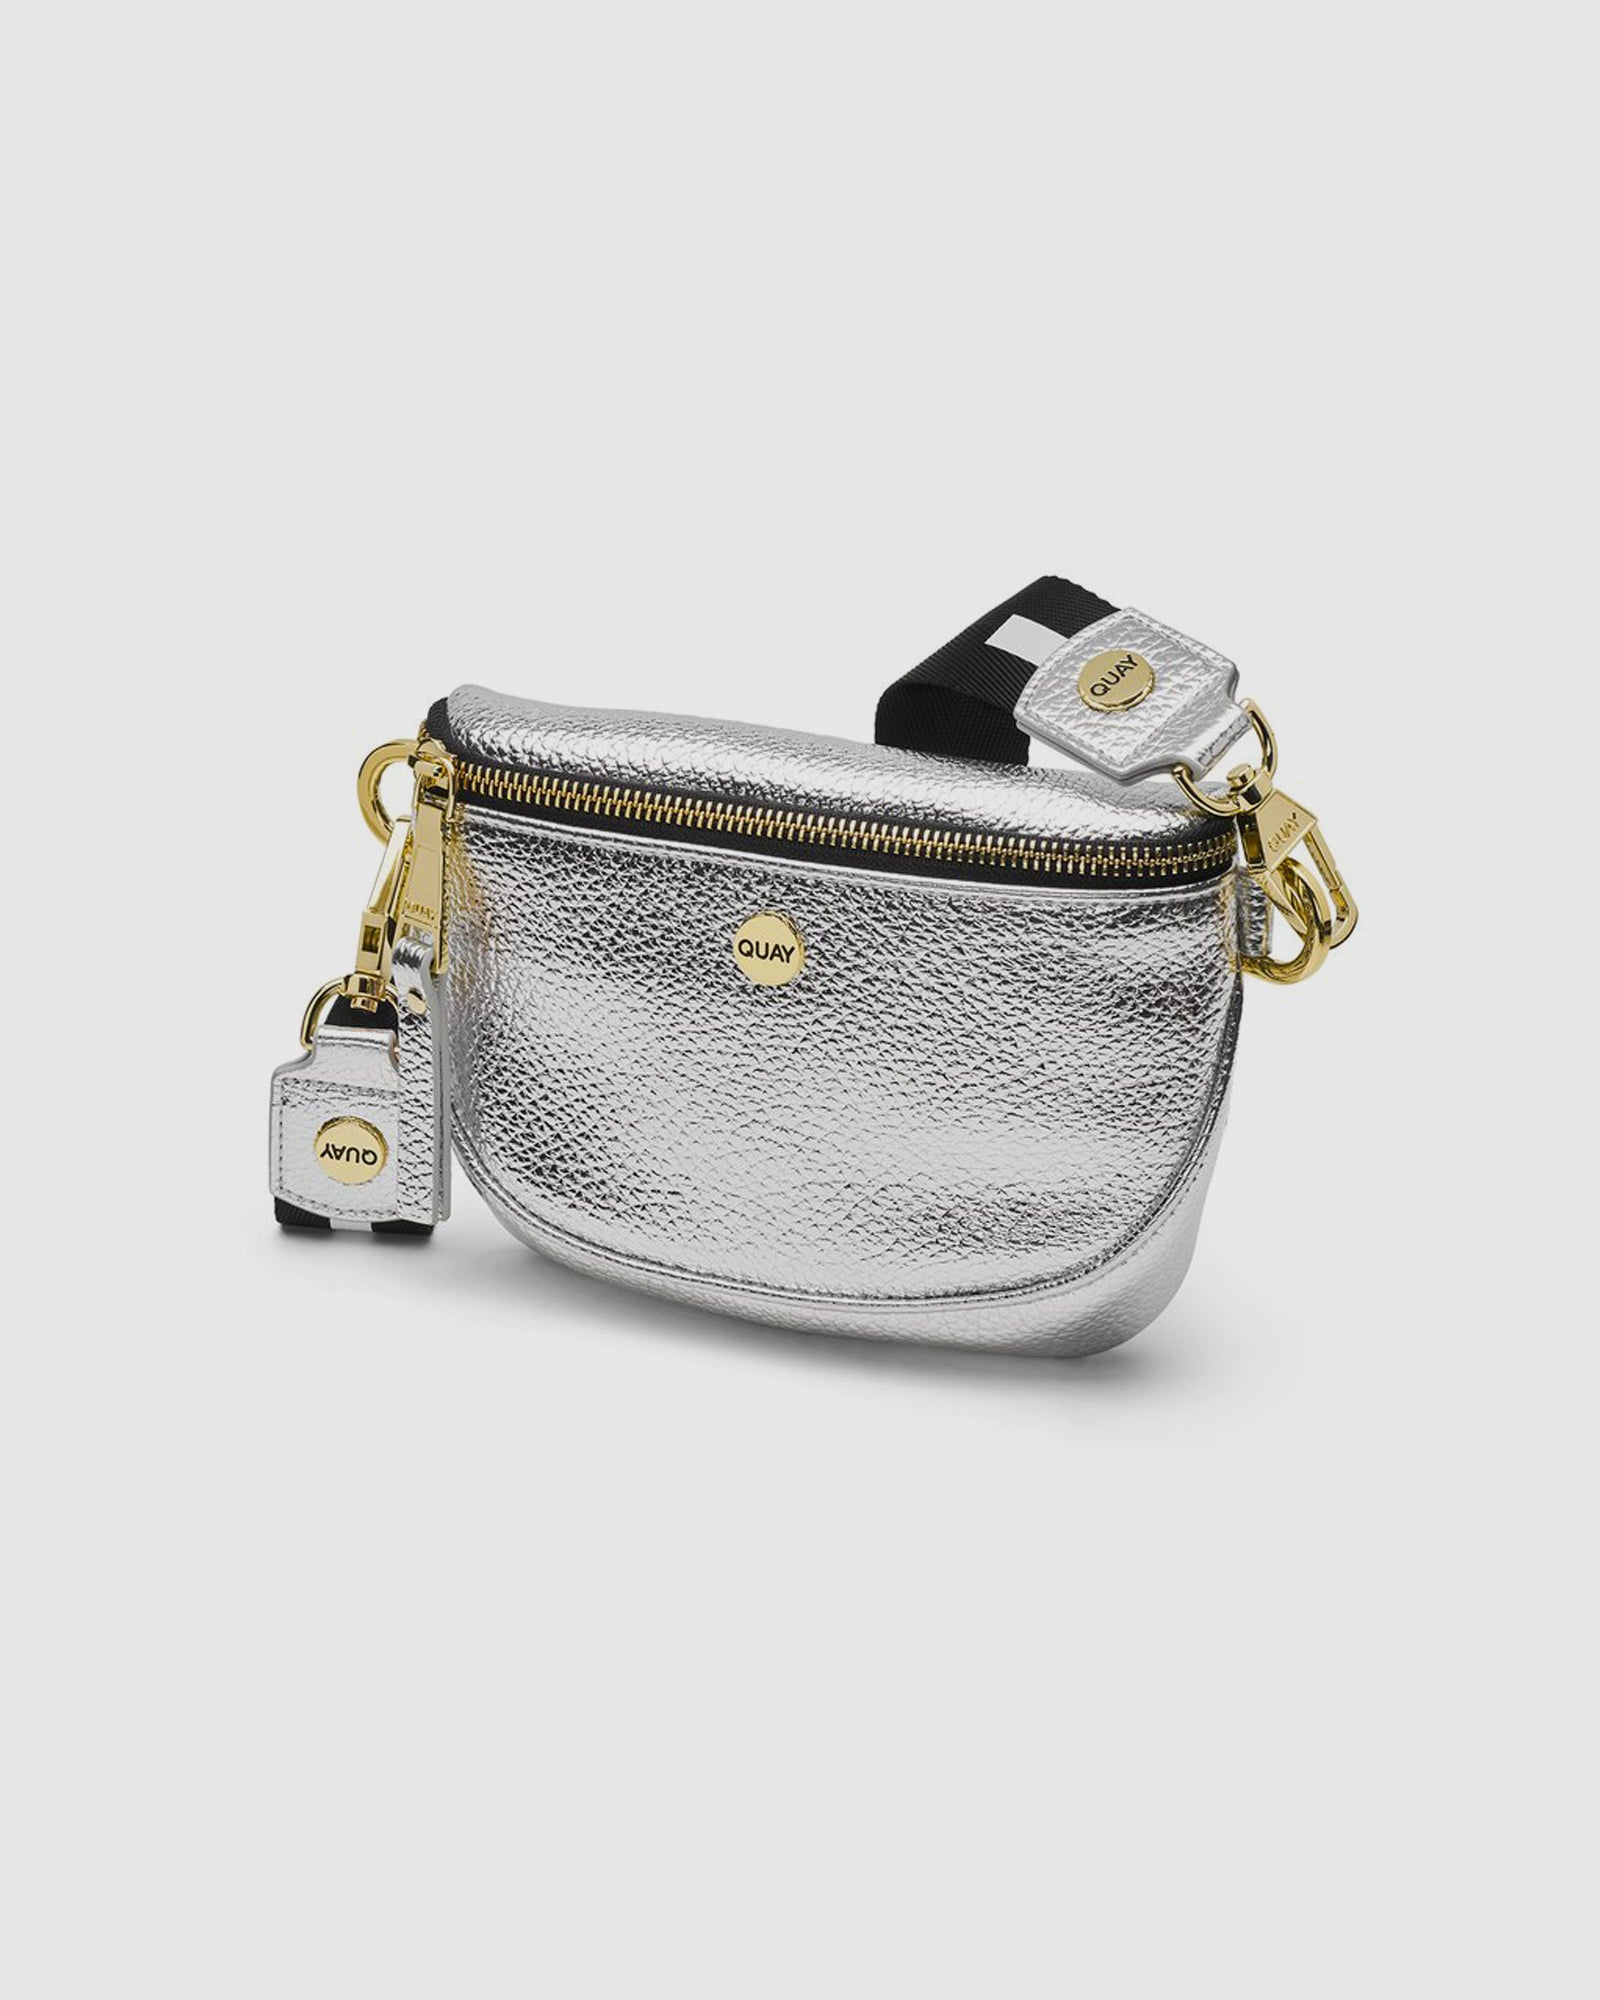 Quay Bum Bag - Silver/Gold